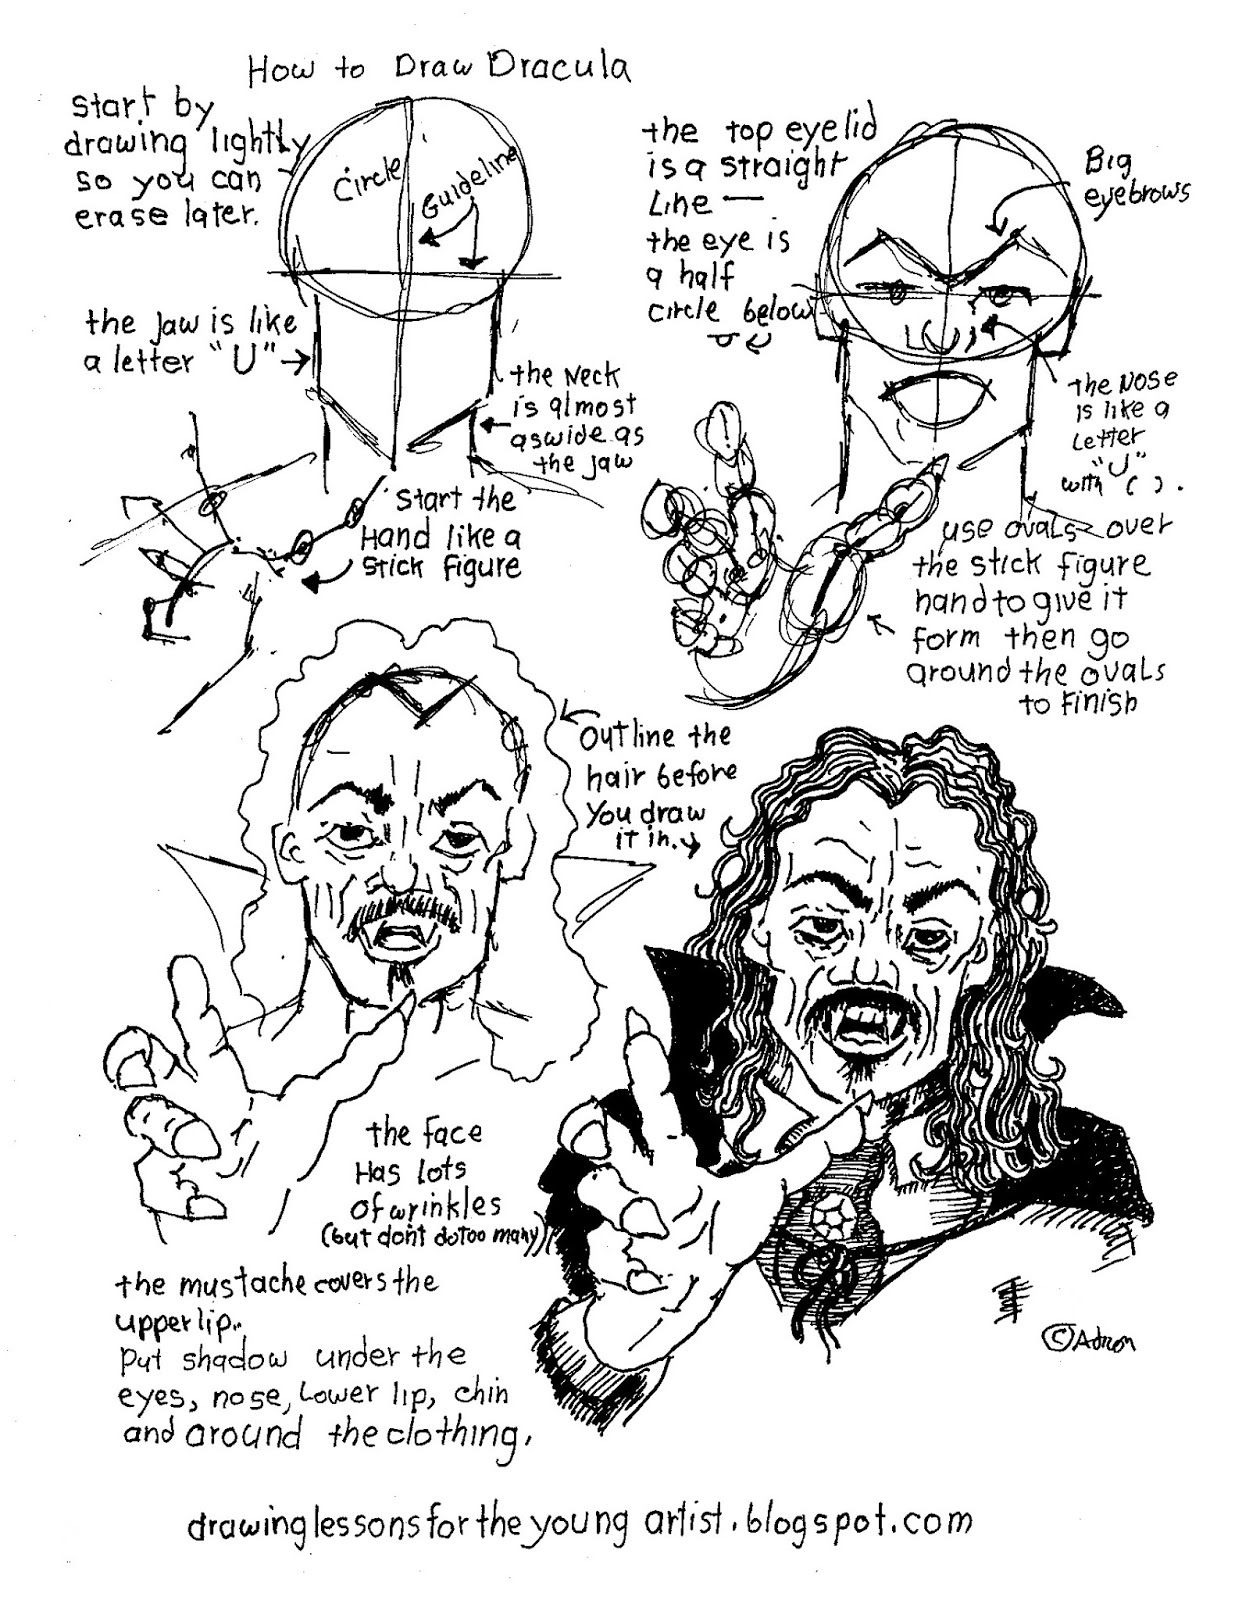 How To Draw Dracula Free Printable Worksheet With Images